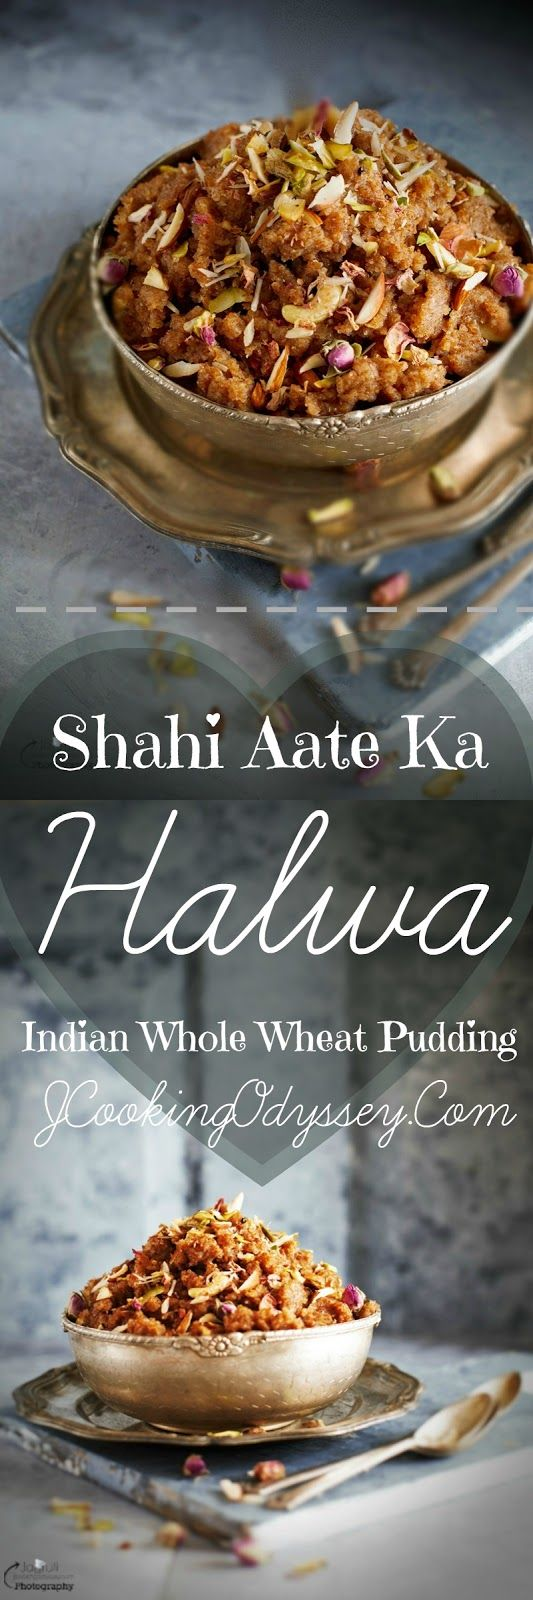 Jagruti's Cooking Odyssey: Shahi Aate / Atte Ka Halwa / Sheera - Indian Whole Wheat Pudding